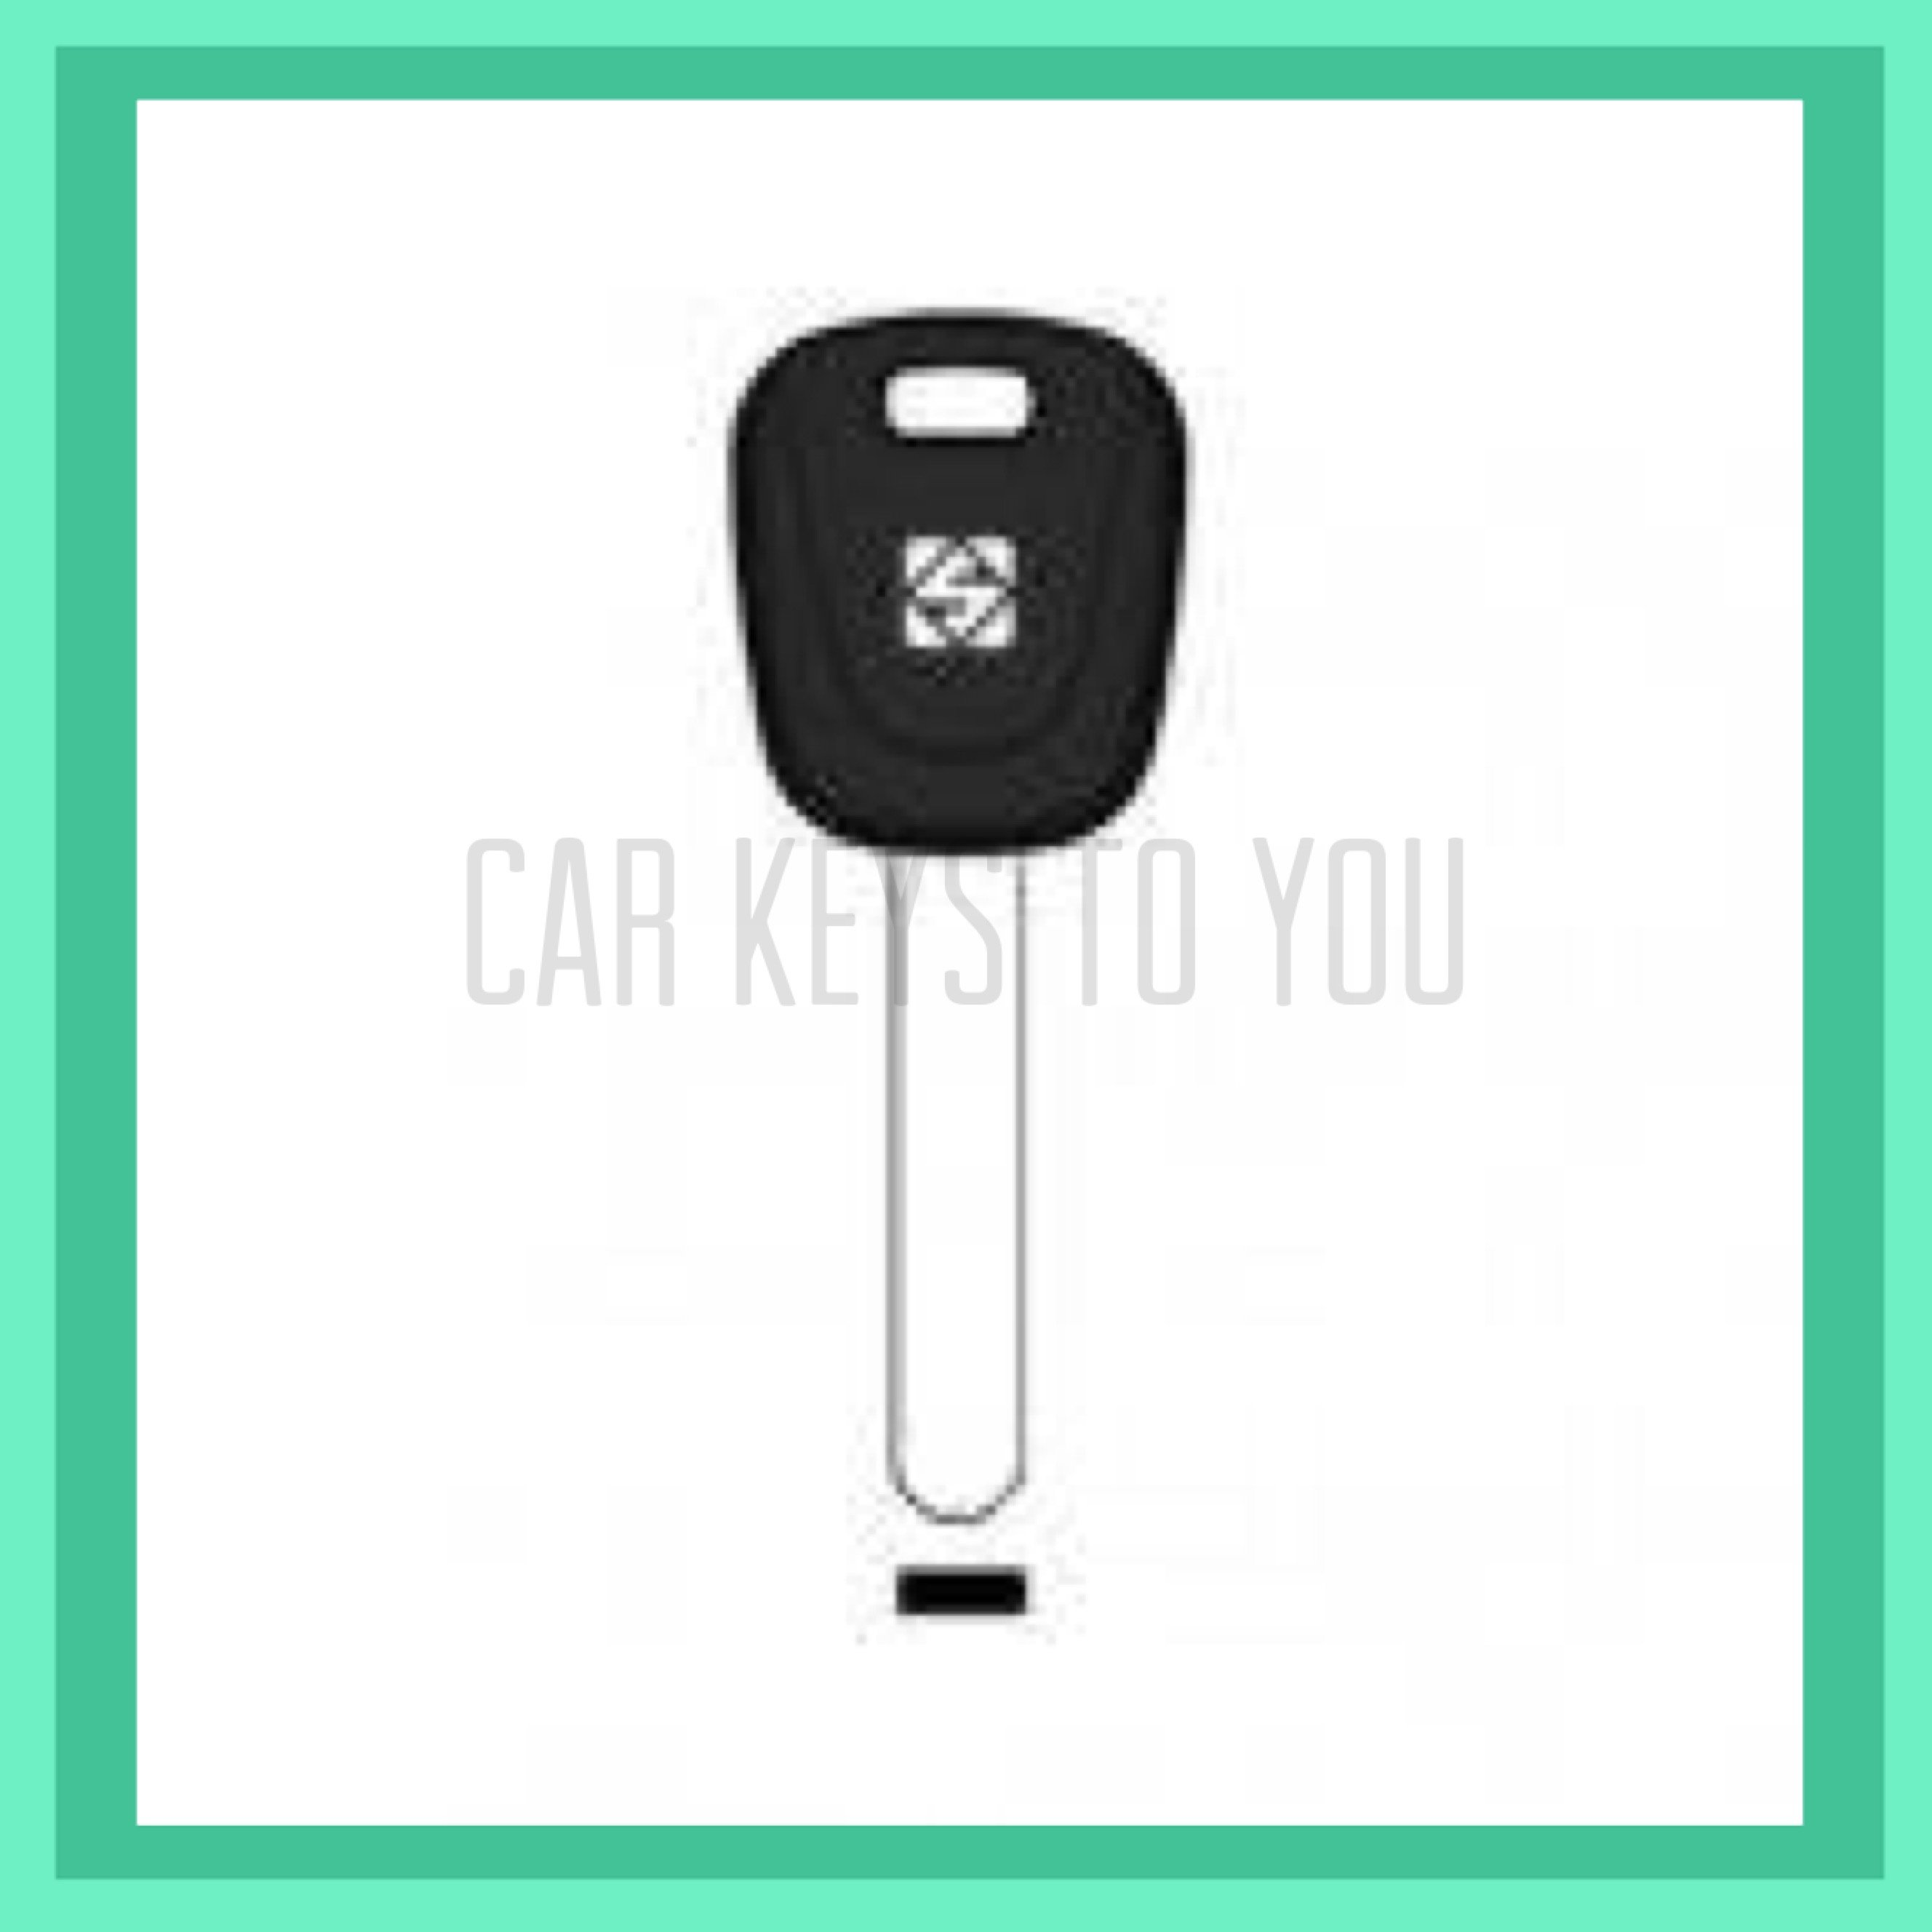 Honda Civic Car Key and Remote, Suit 8th Gen 2008-2012